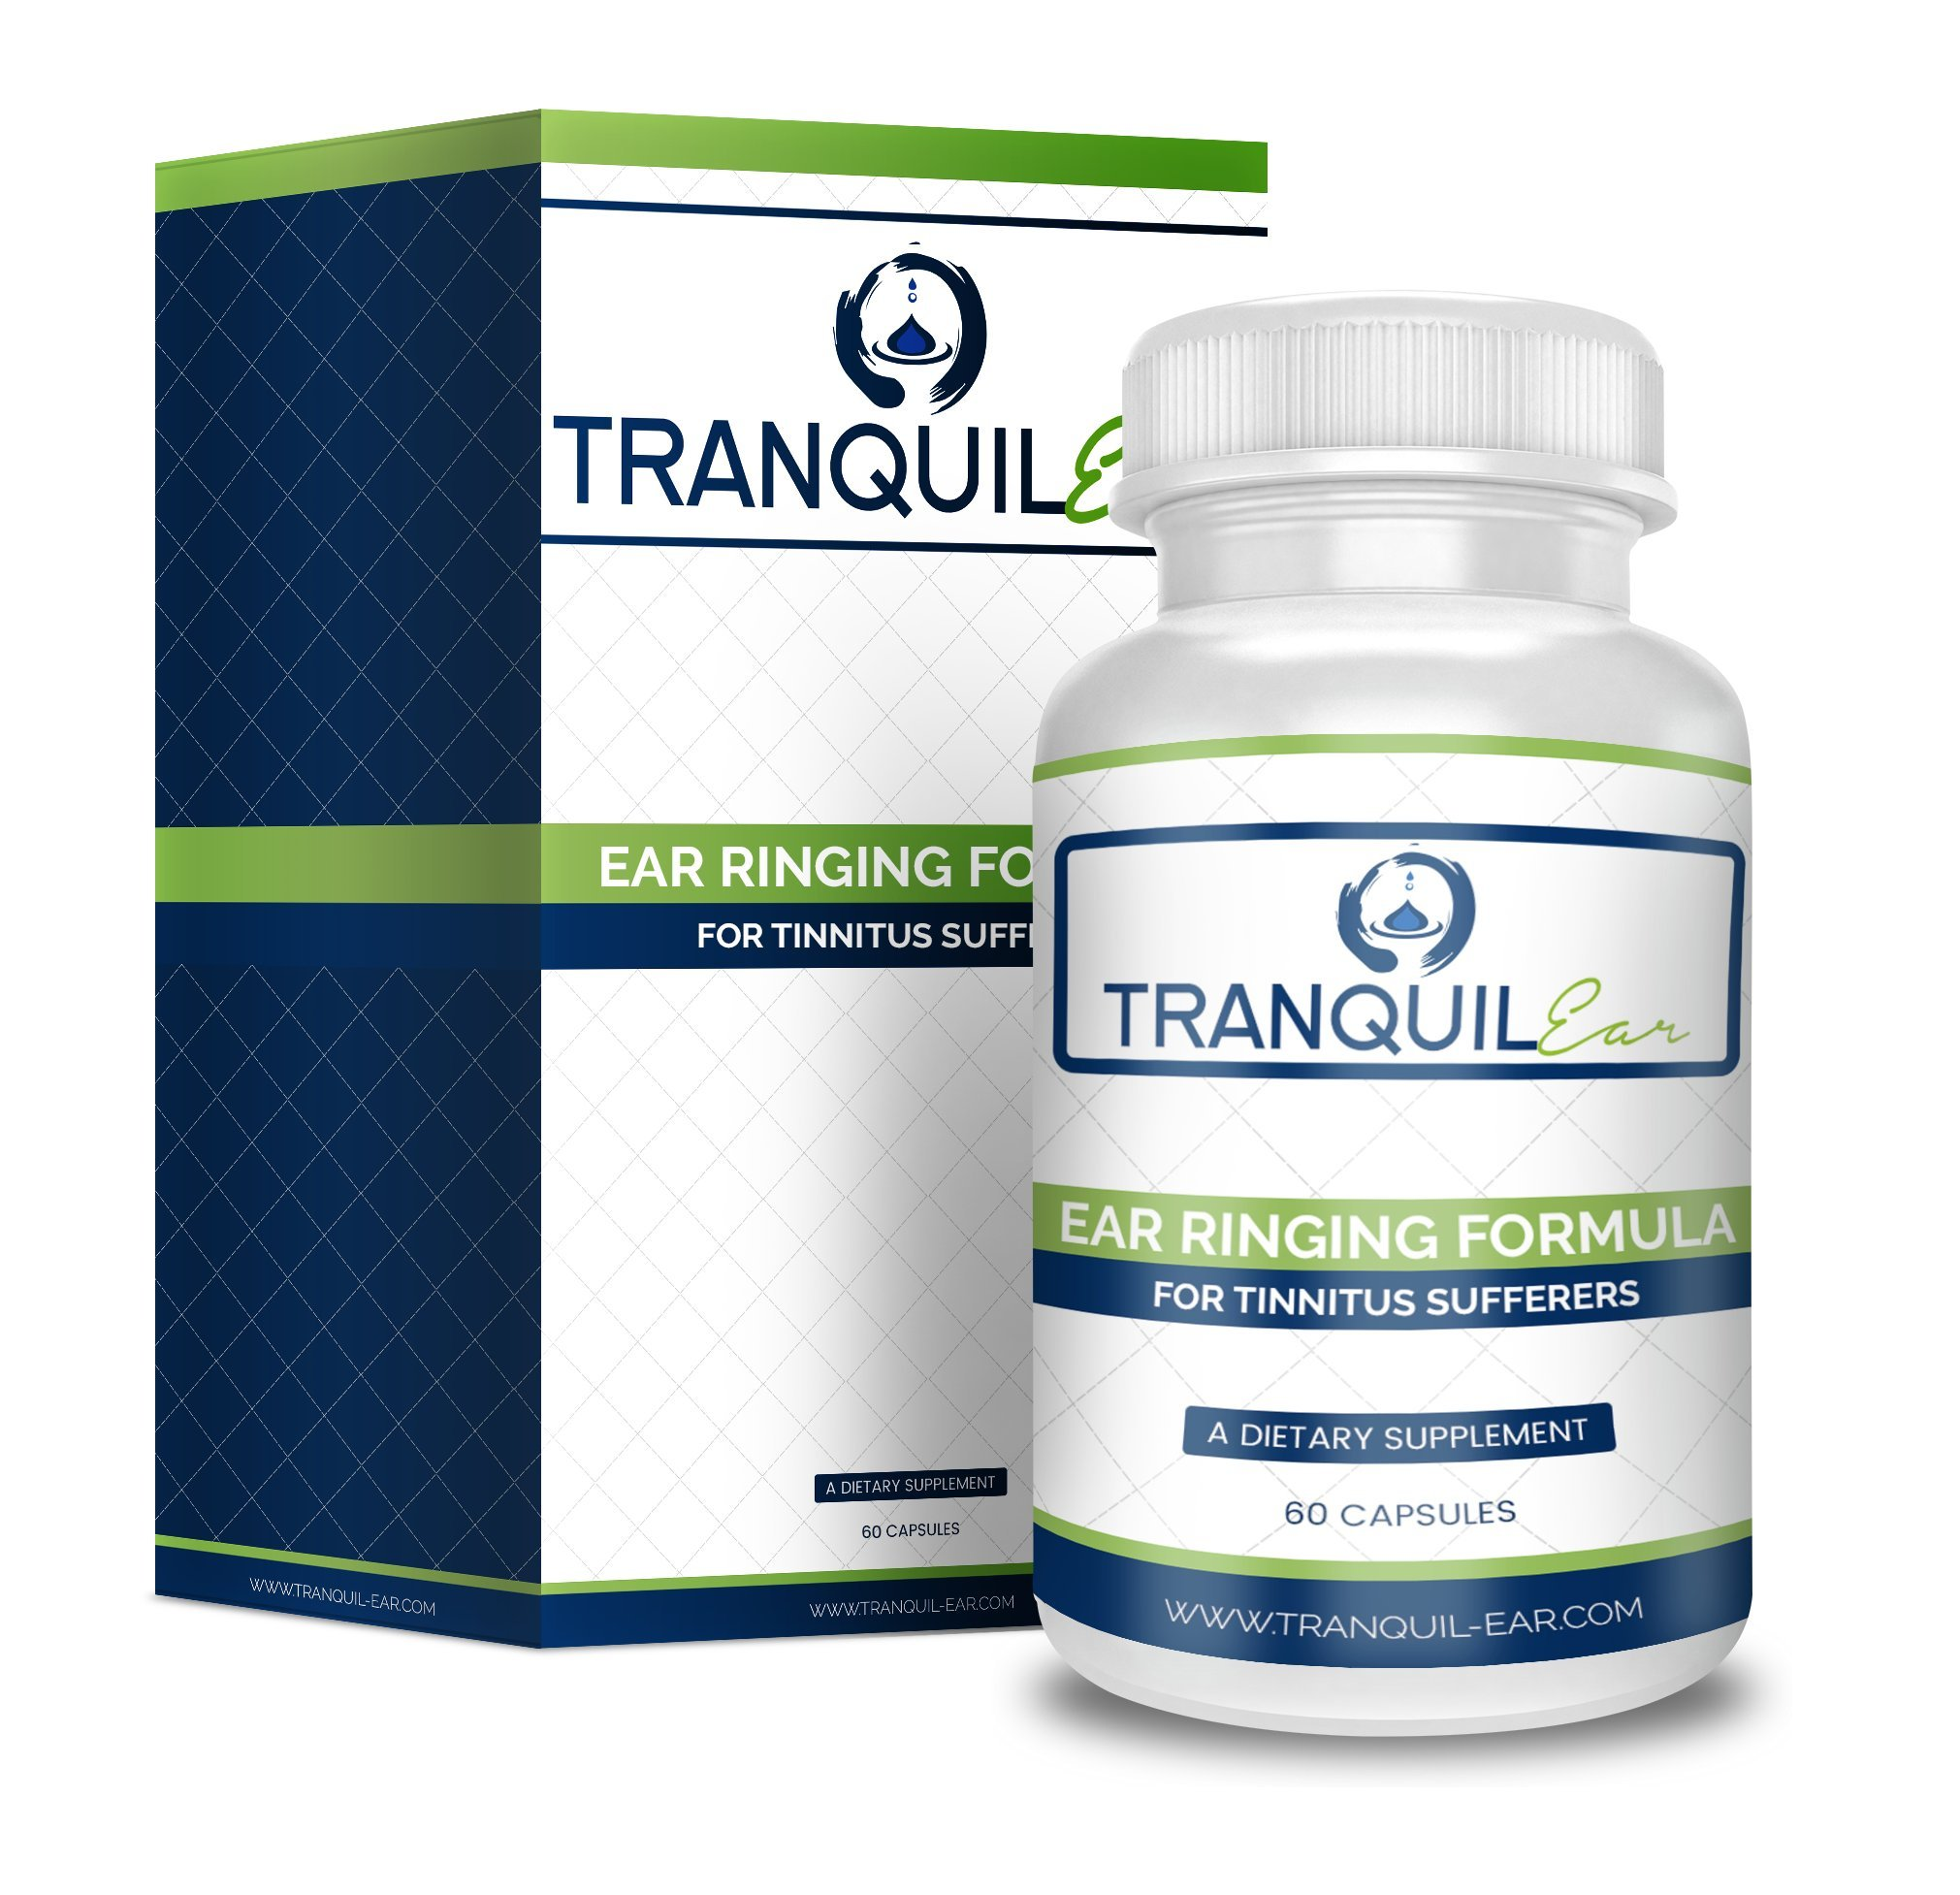 Tranquil Ear - Potent Tinnitus Relief Supplement (60 Capsules) - Natural Tinnitus Treatment and Ear Ringing Formula - Help Stop Ringing Ears Once And For All by Tranquil Ear